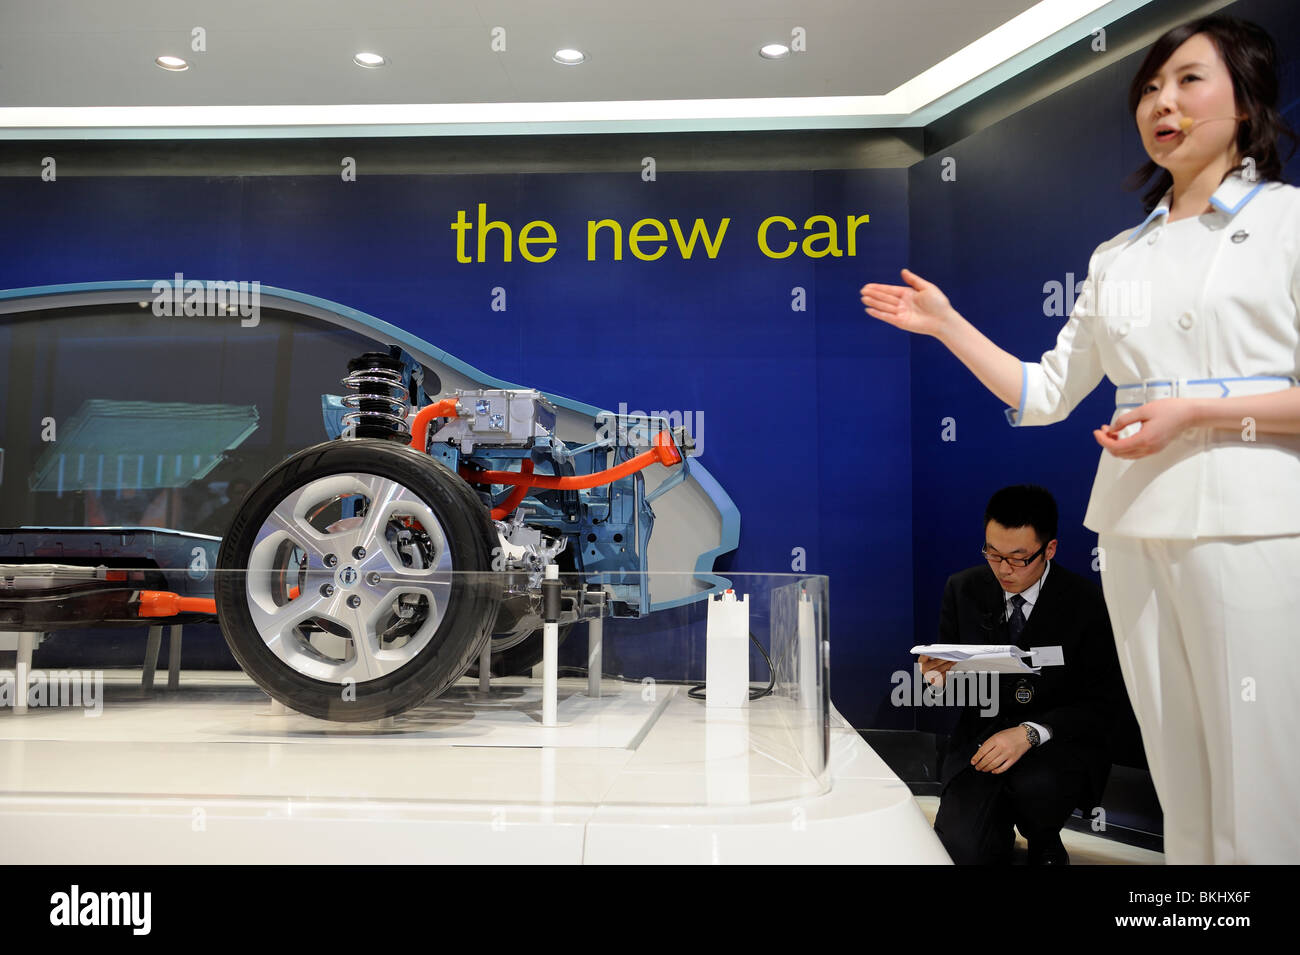 Nissan Stock Photos Images Alamy Cobalt Fuel Filter Zero Emissions Staff Introduces The Structural Model Of Motor Cos Emission Electronic